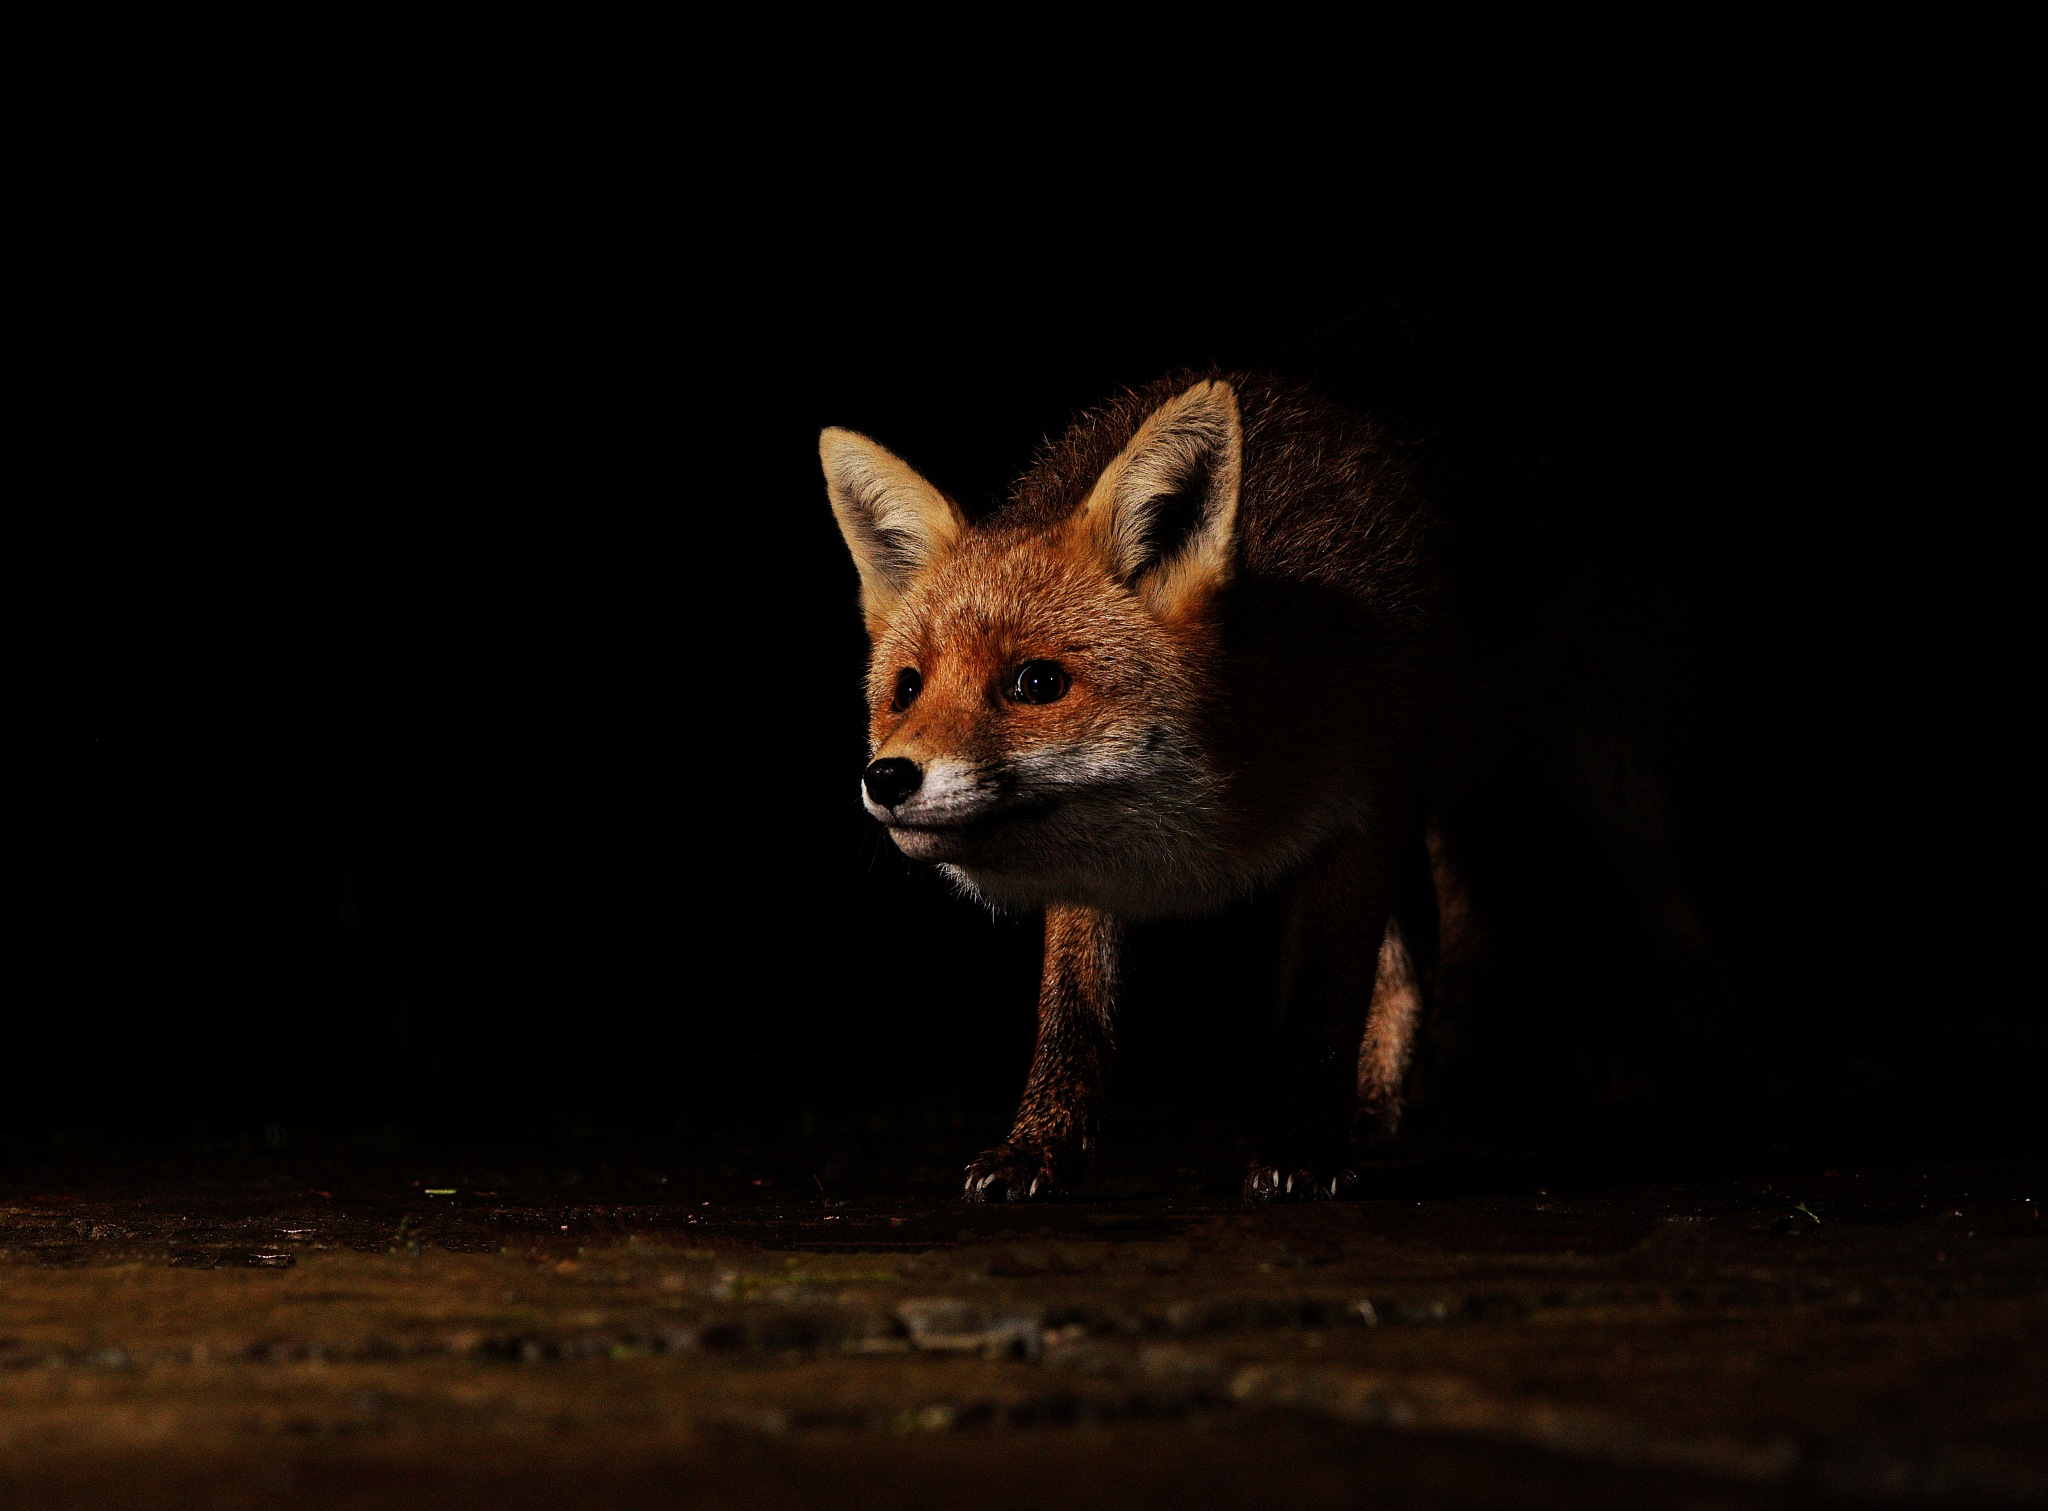 Night Prowler by Paul Collins